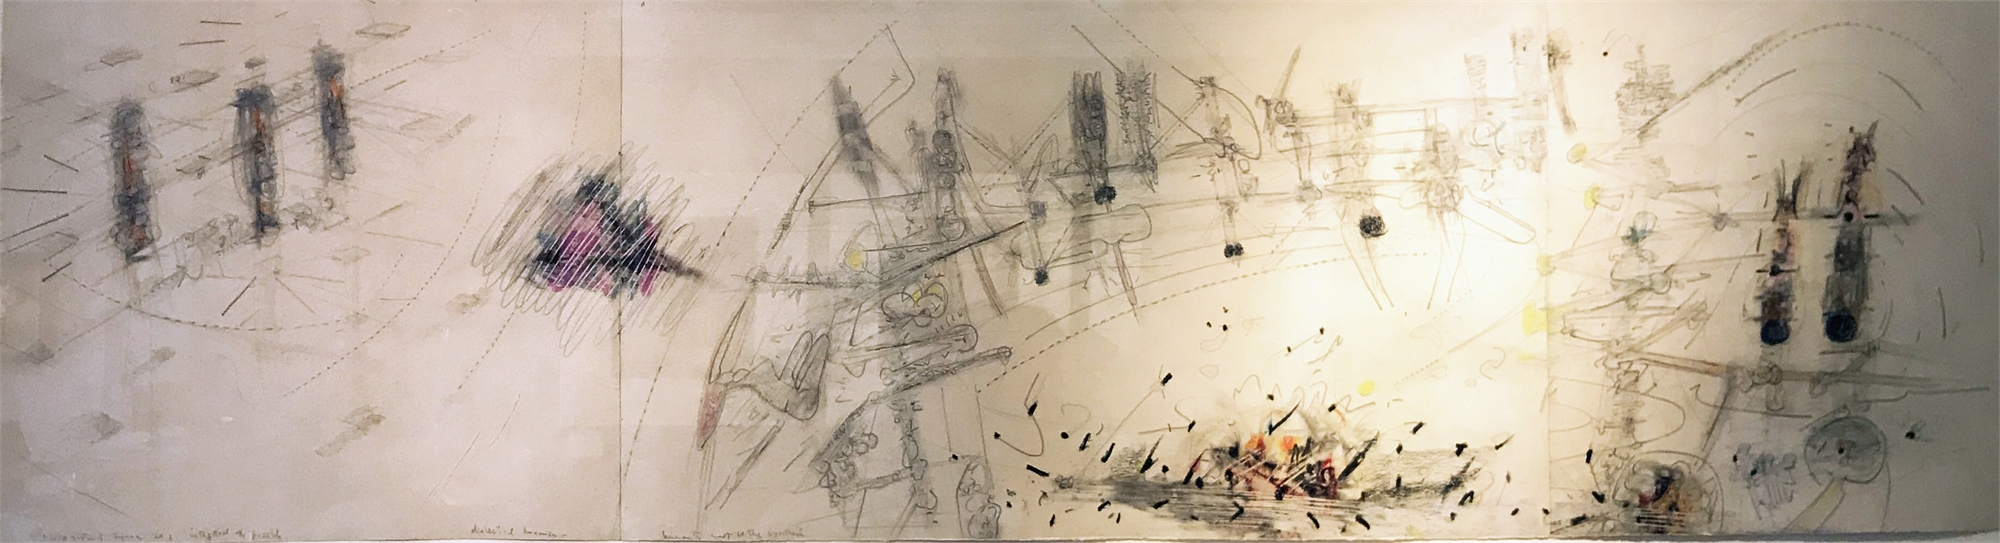 It's Not A Question of Superman by Roberto Matta